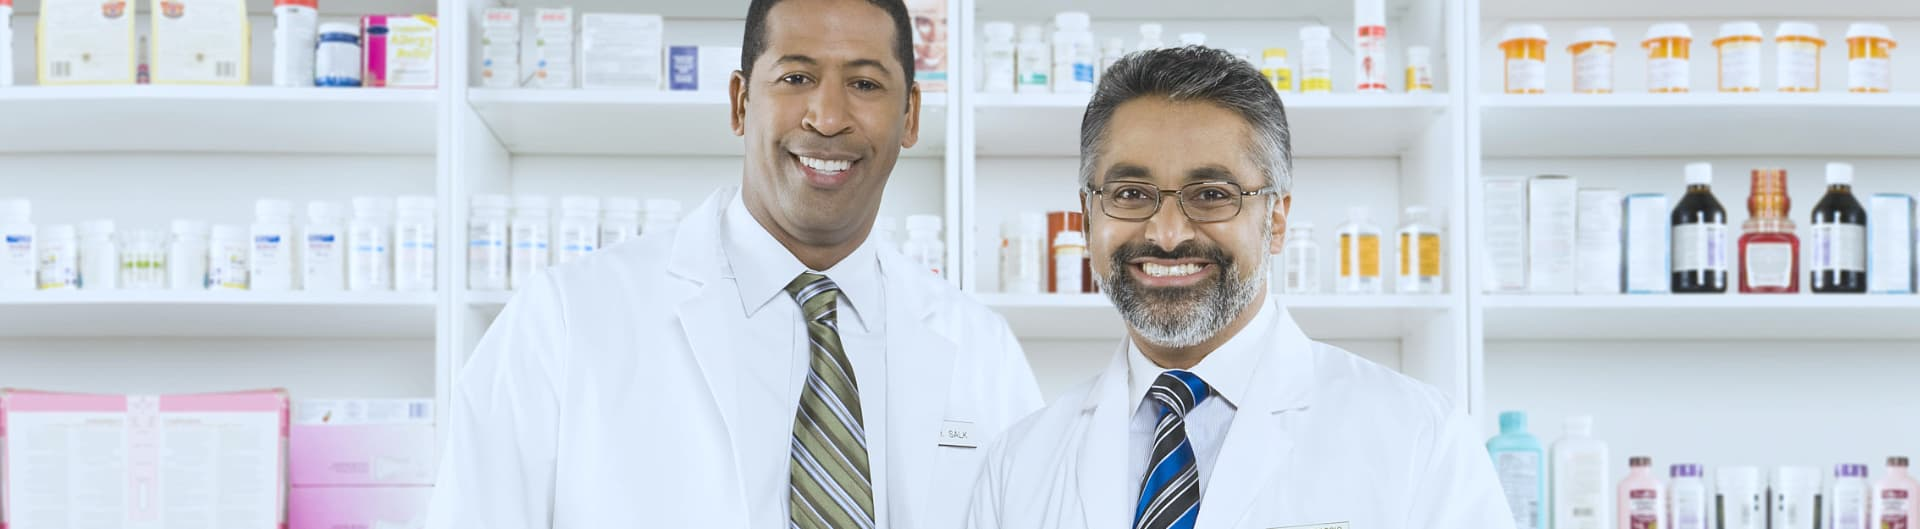 two male pharmacists